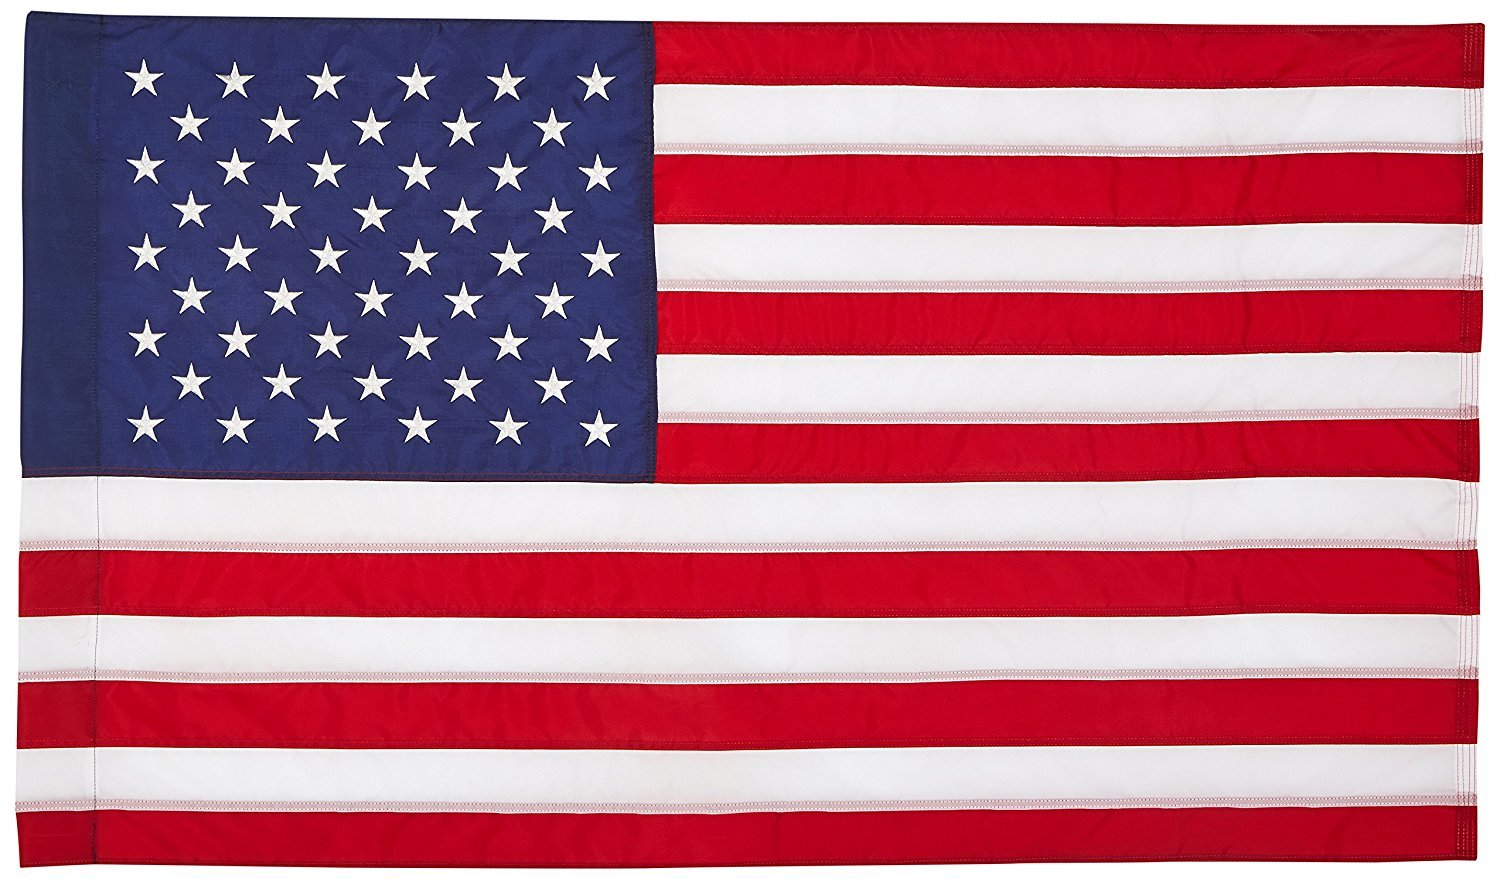 US Flag 2.5'x4' US AMERICAN FLAG 28x40 inch (Pole Sleeve) Outdoor SolarMax Nylon Flag (Embroidered Stars & Sewn Stripes) - 100% Made in America / Military Grade Fabric